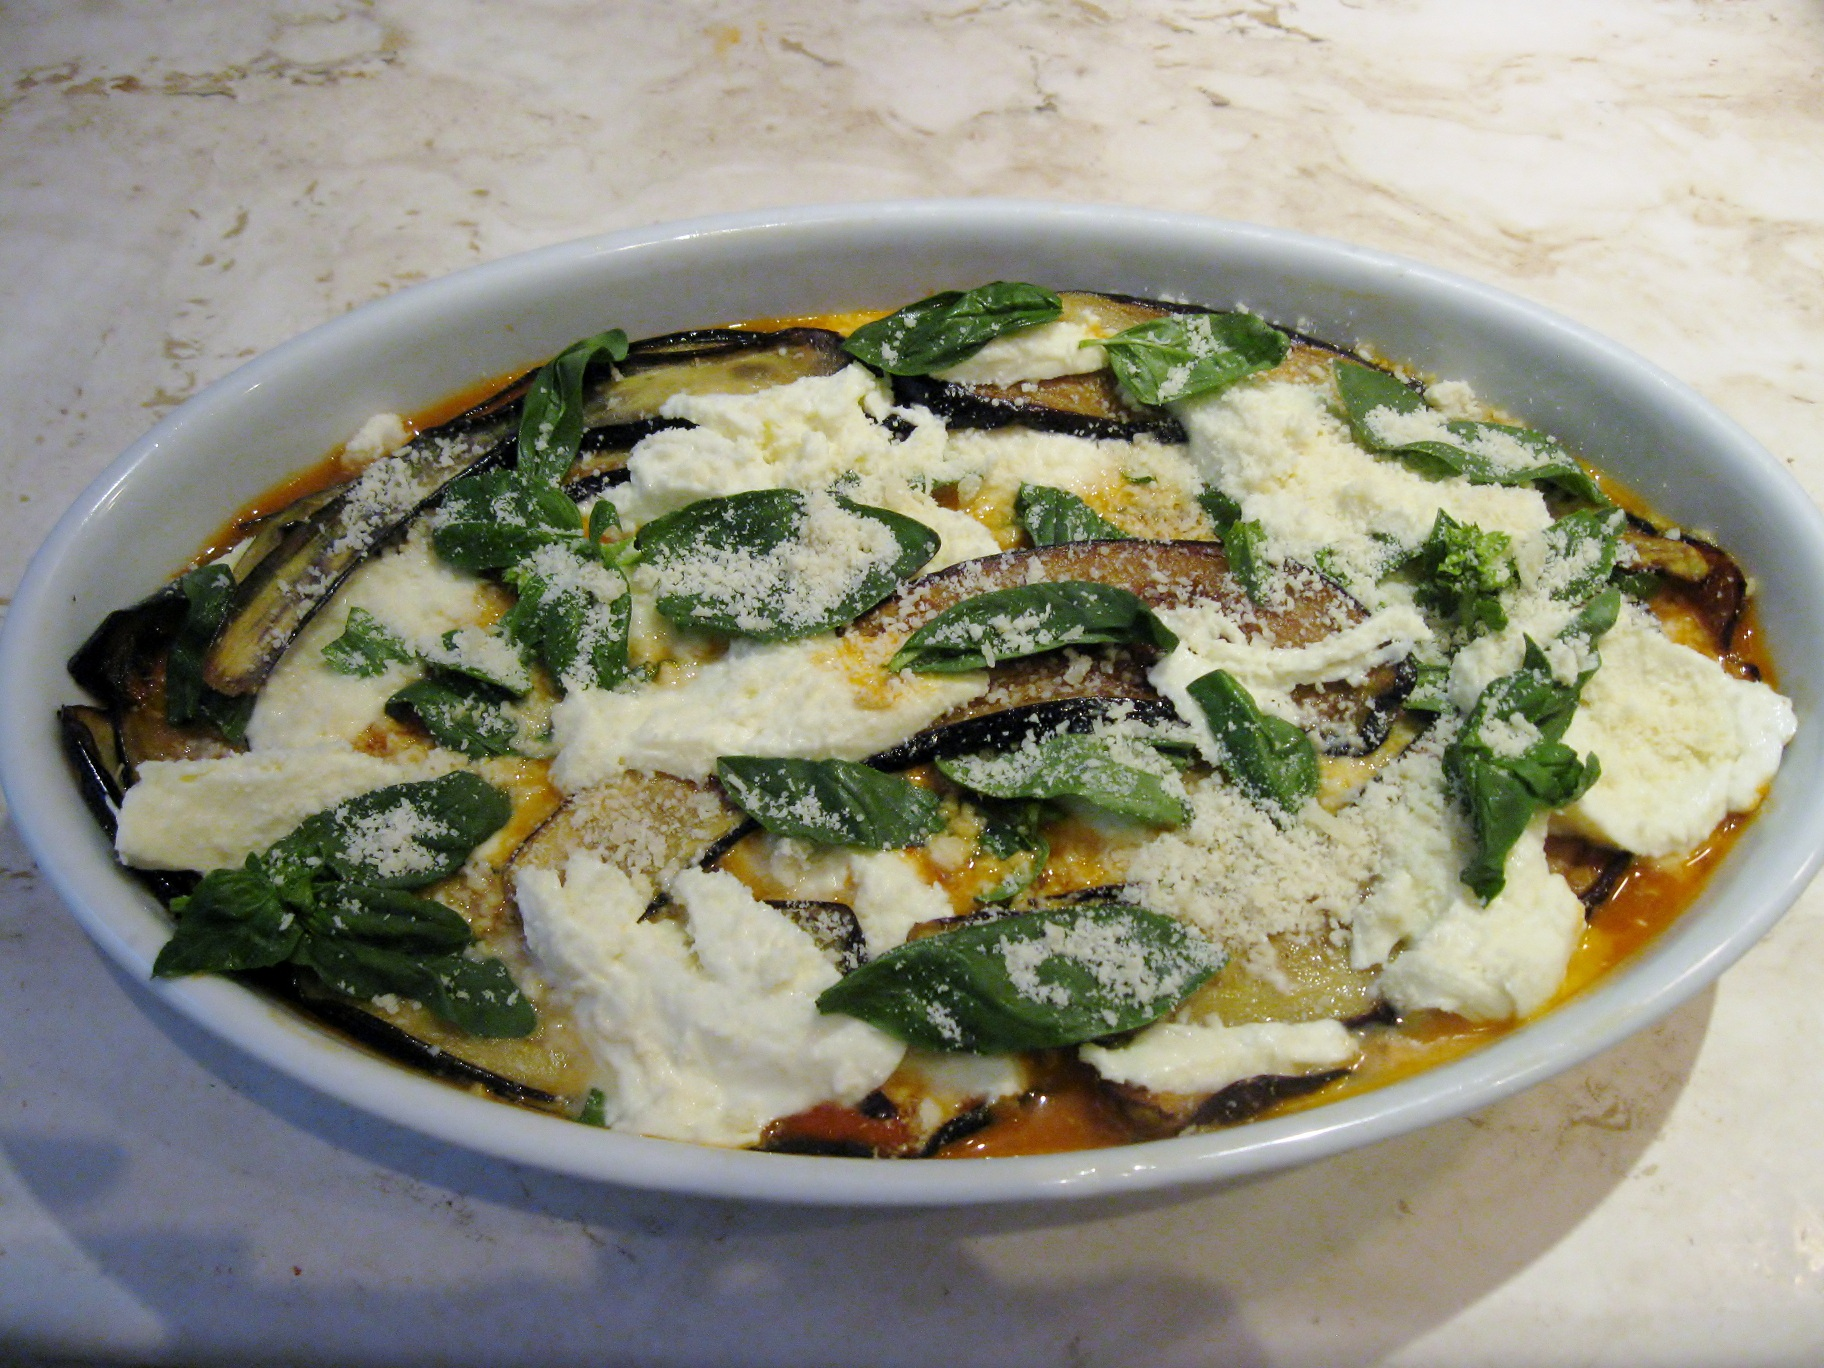 Continue layering with remaining eggplant, sauce, Fior di Latte ...